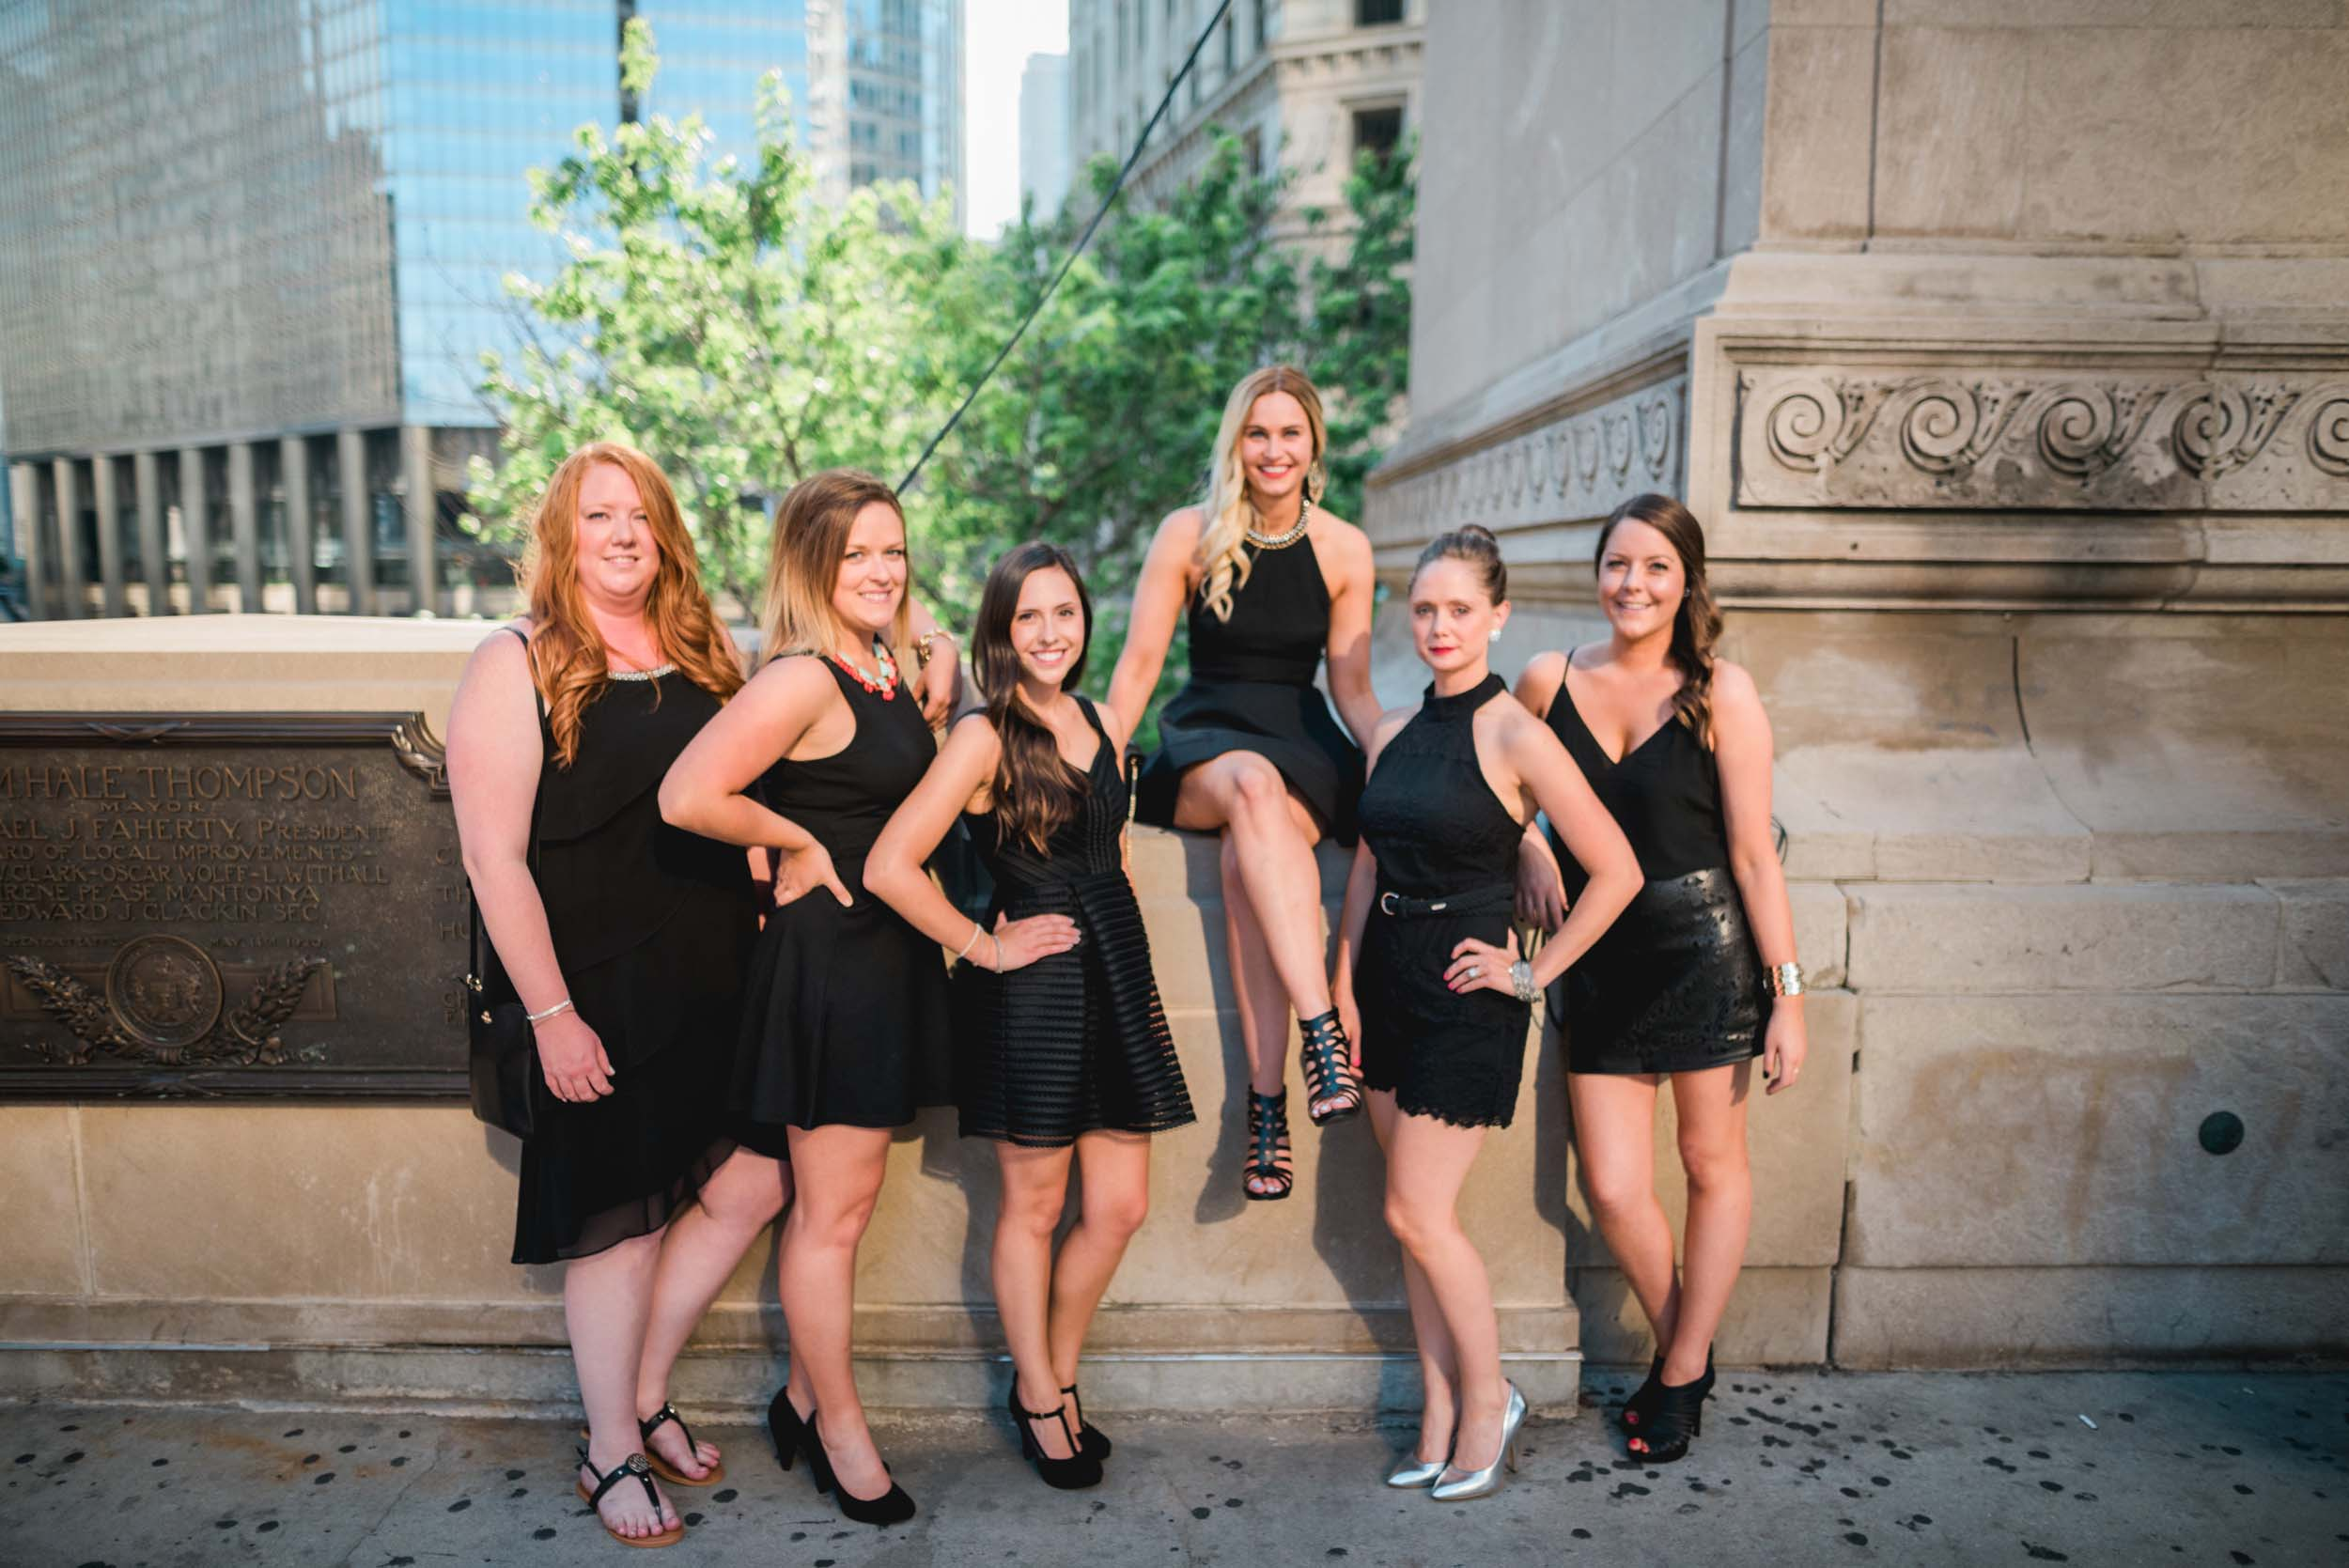 Six female friends standing together with bride-to-be sitting up on a ledge on a bachelorette trip in Chicago, USA